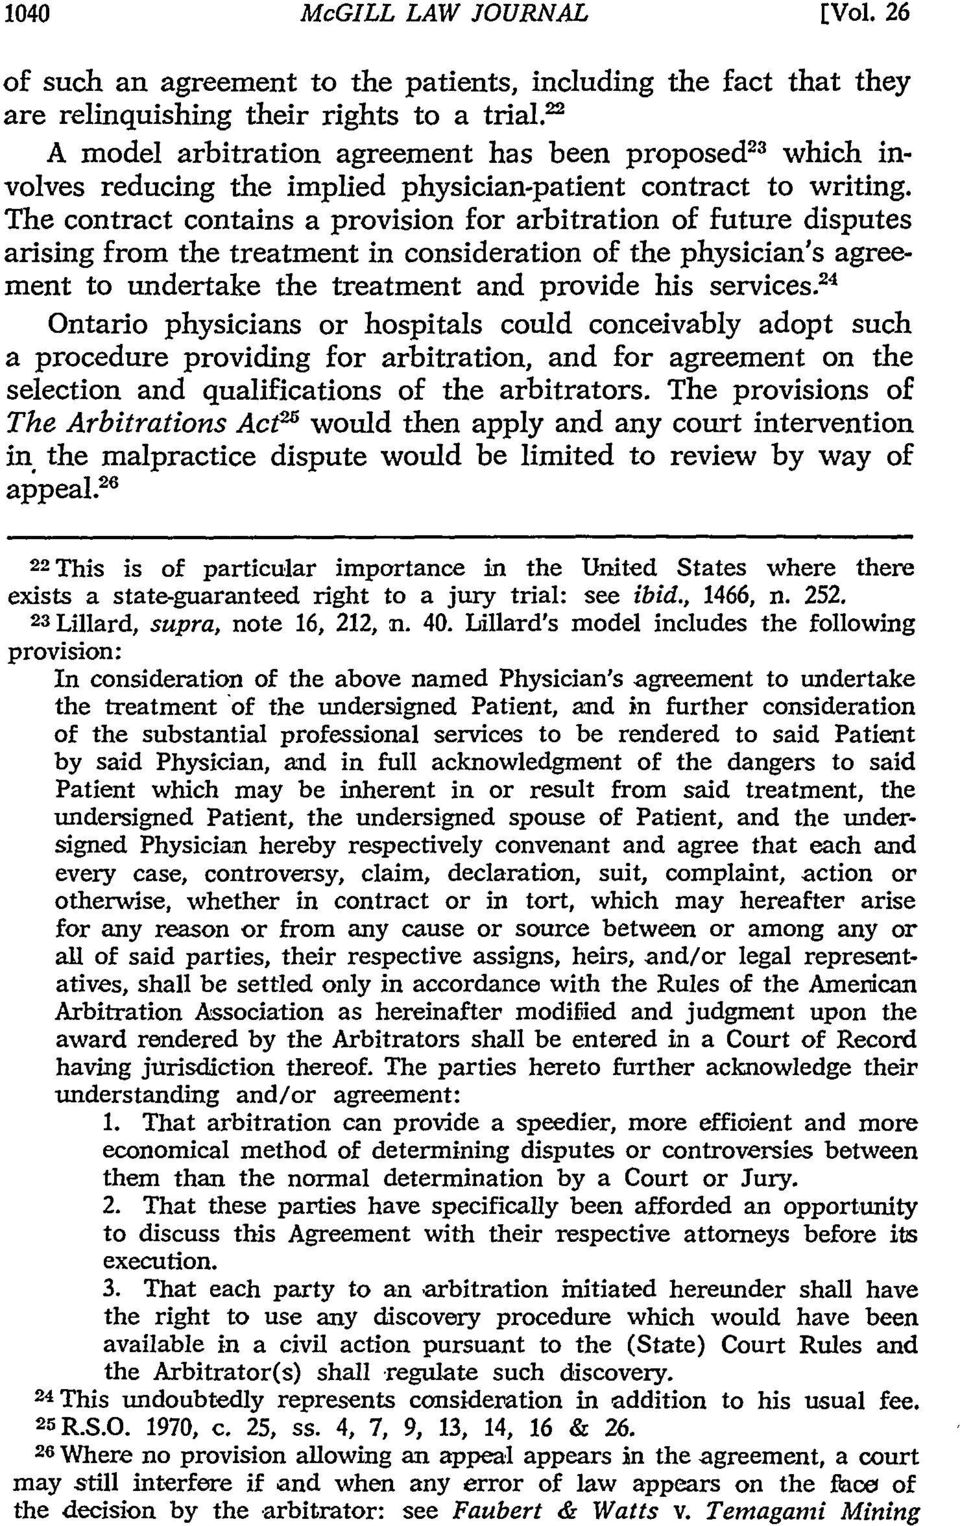 The contract contains a provision for arbitration of future disputes arising from the treatment in consideration of the physician's agreement to undertake the treatment and provide his services.